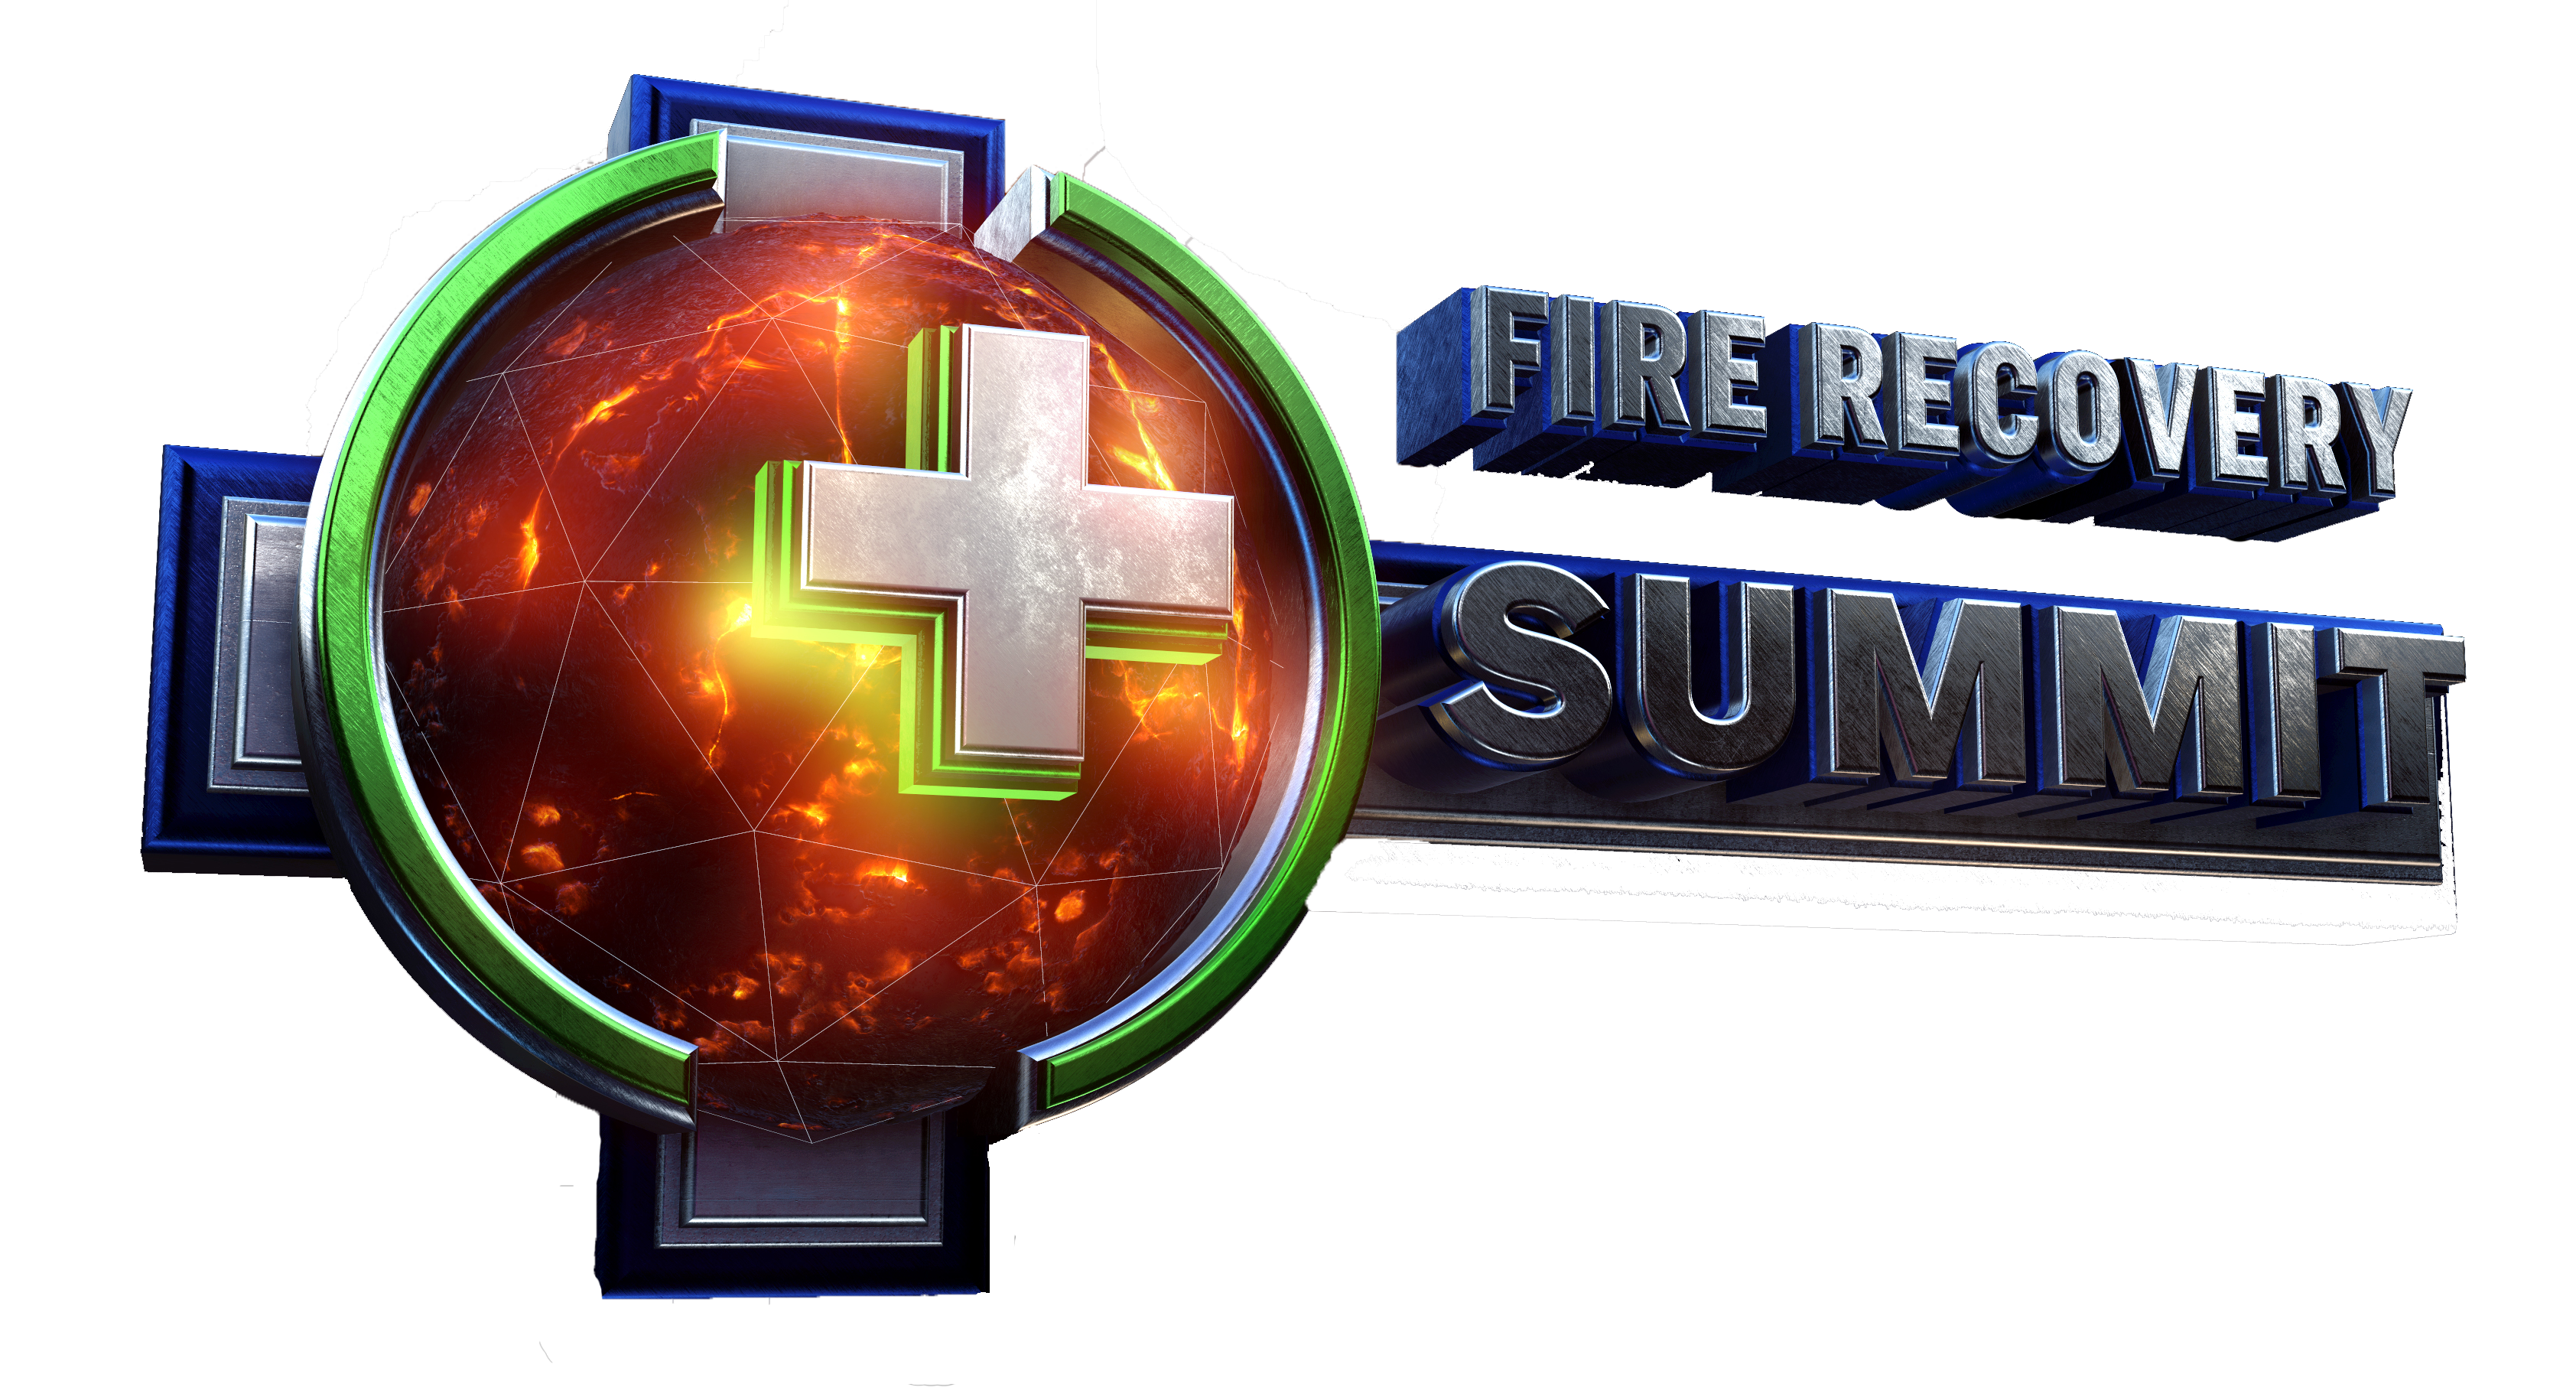 Fire Recovery Summit